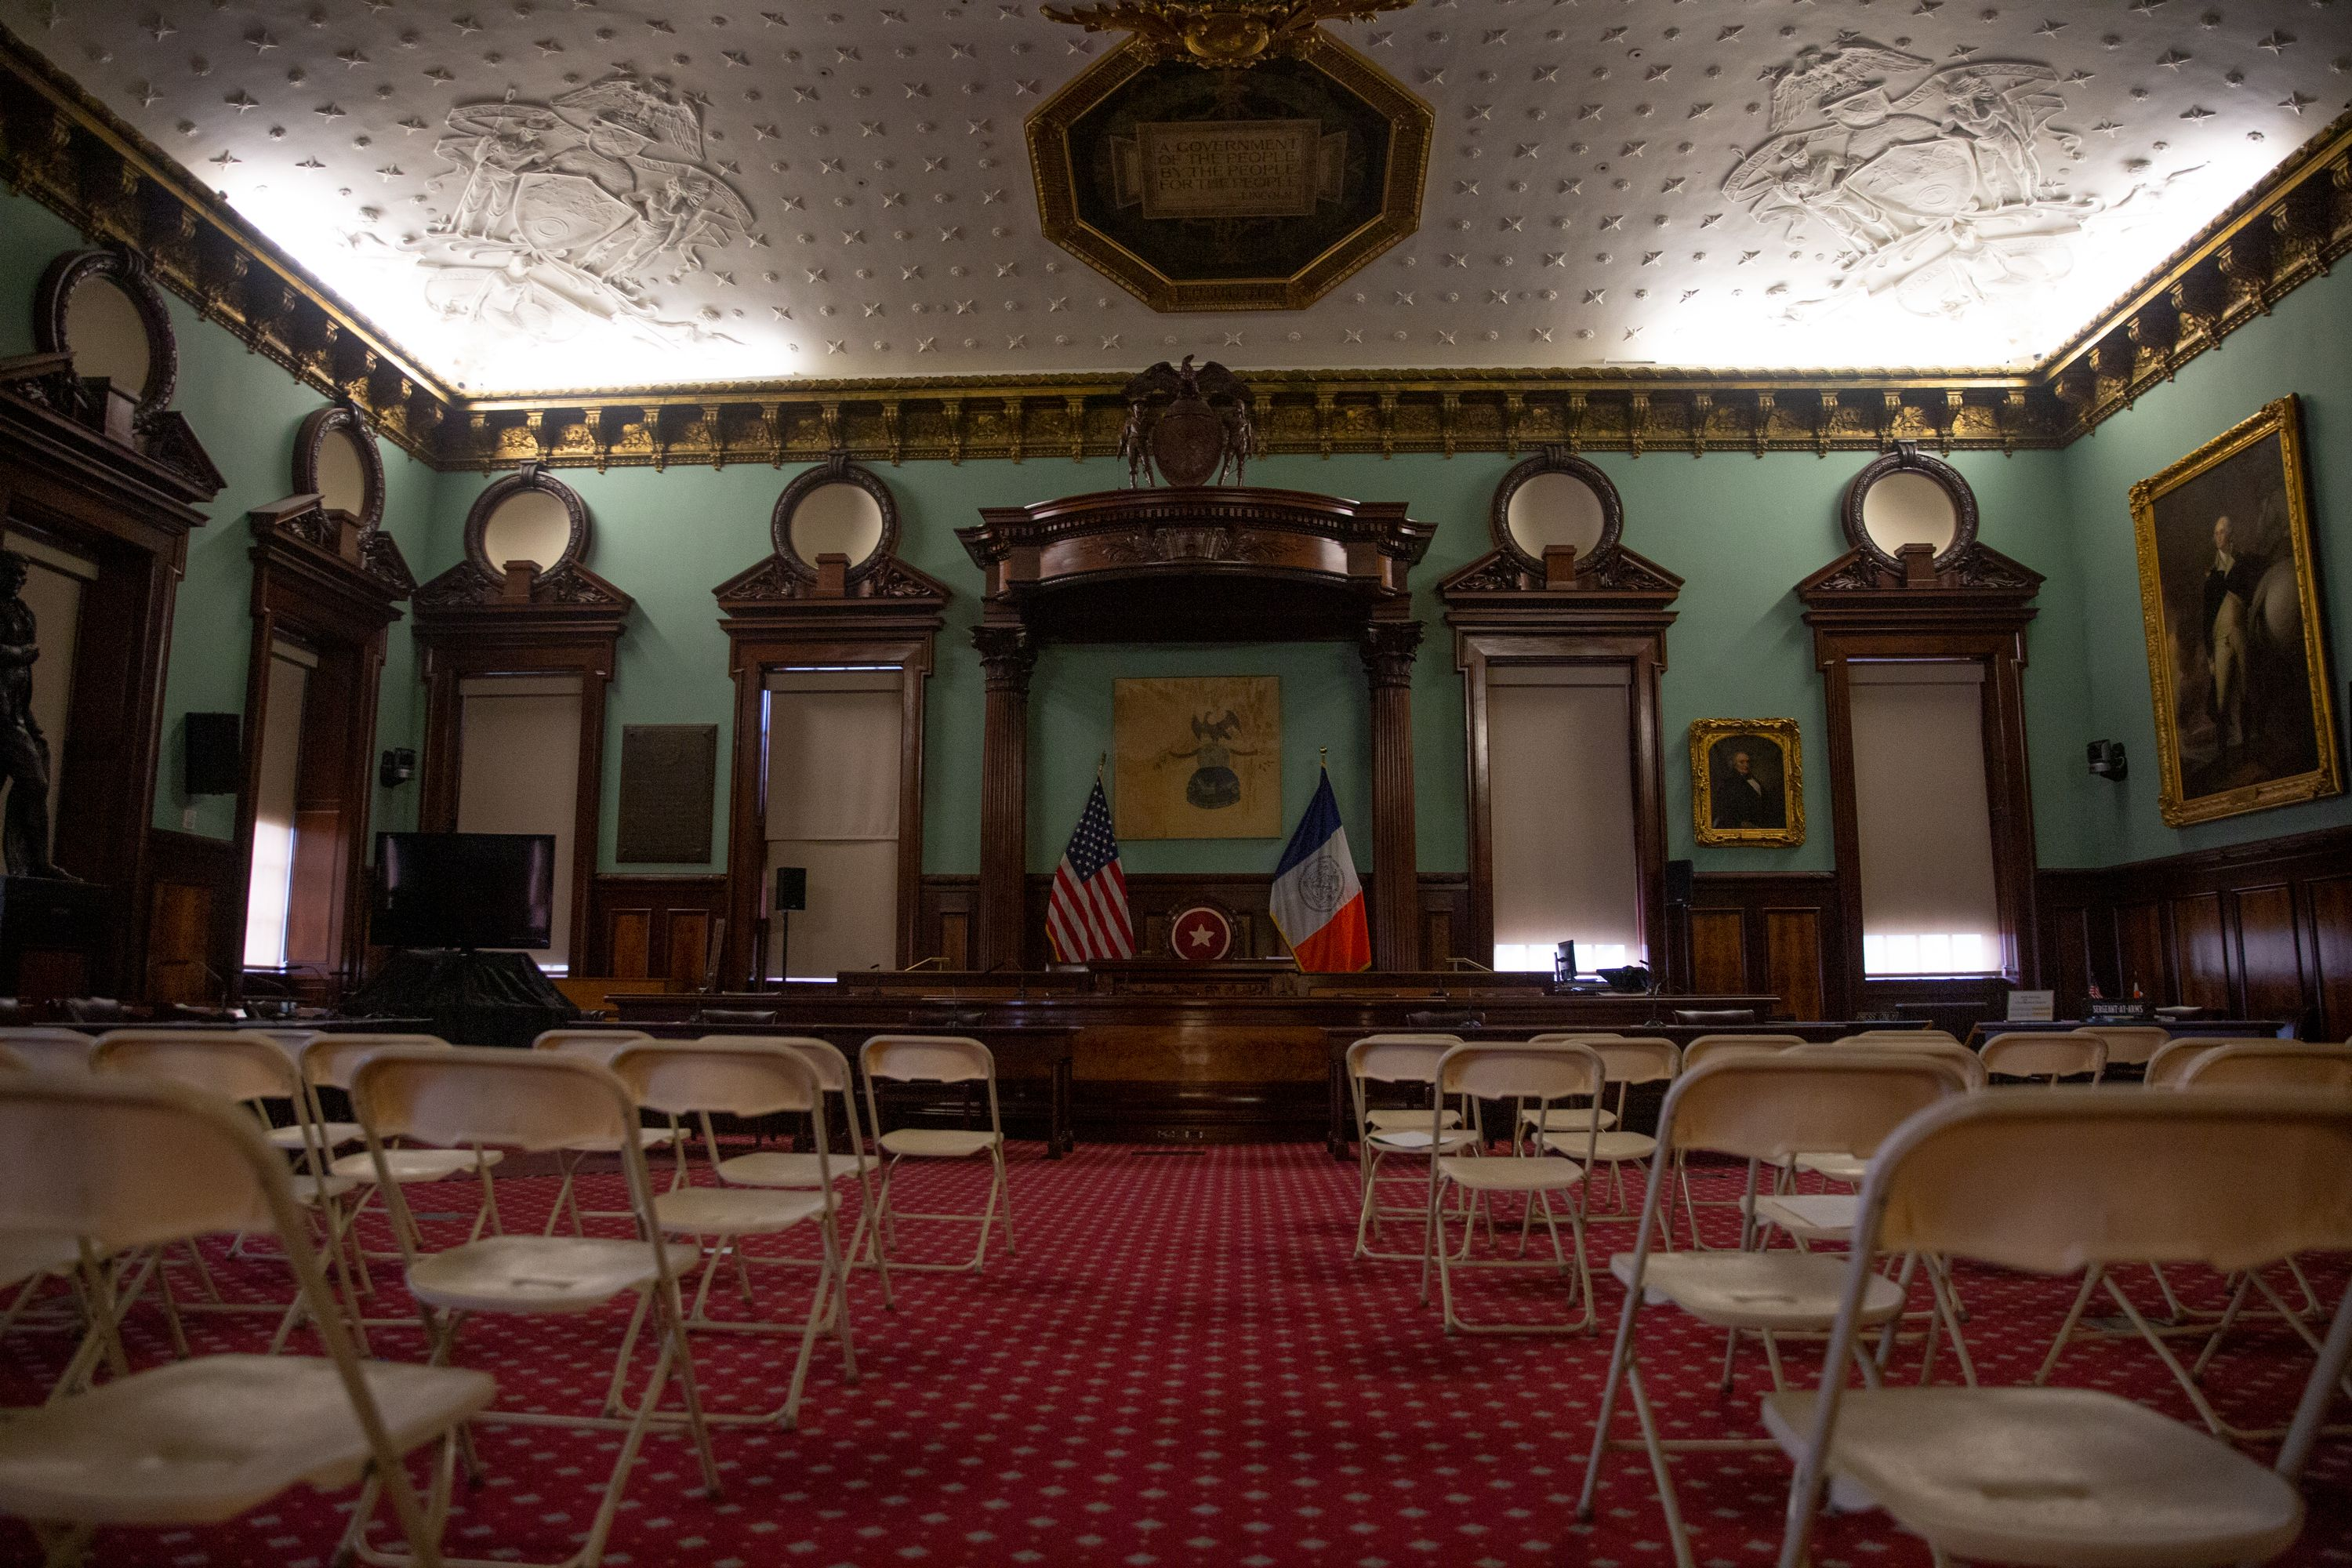 The City Council chambers were empty while large gathering places were closed to prevent the spread of the coronavirus.